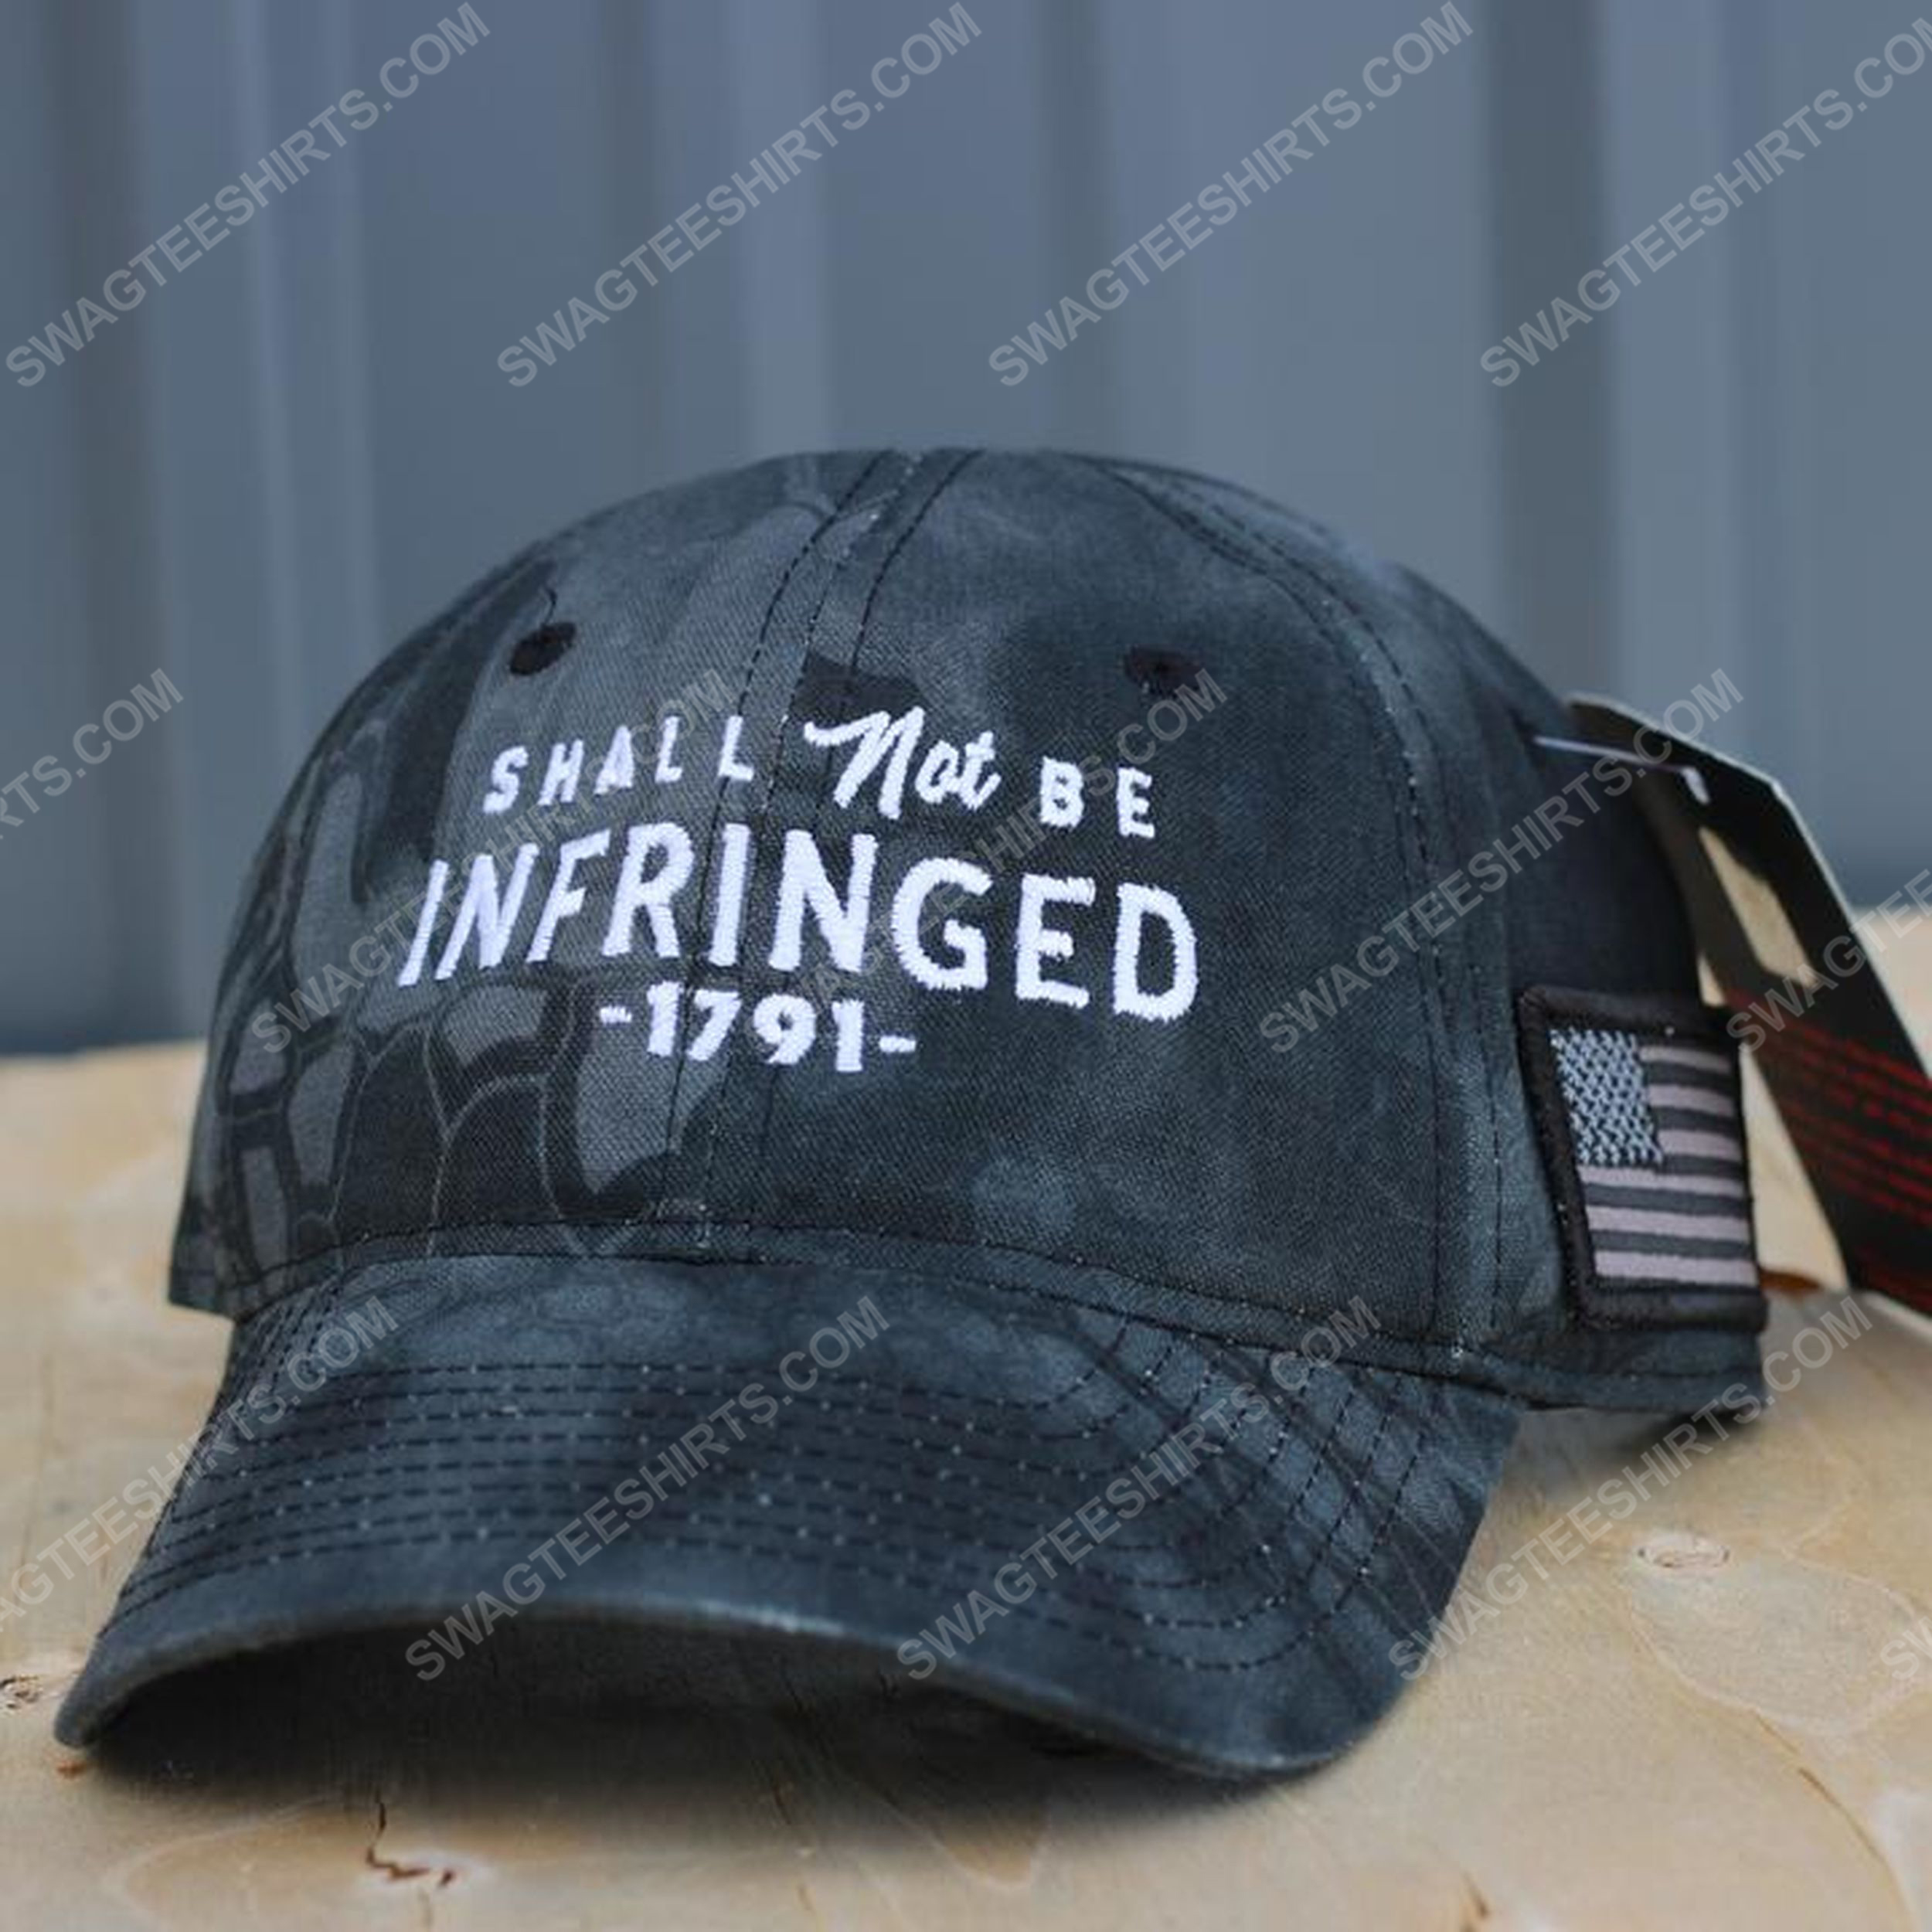 Shall not be infringed full print classic hat 1 - Copy (2)